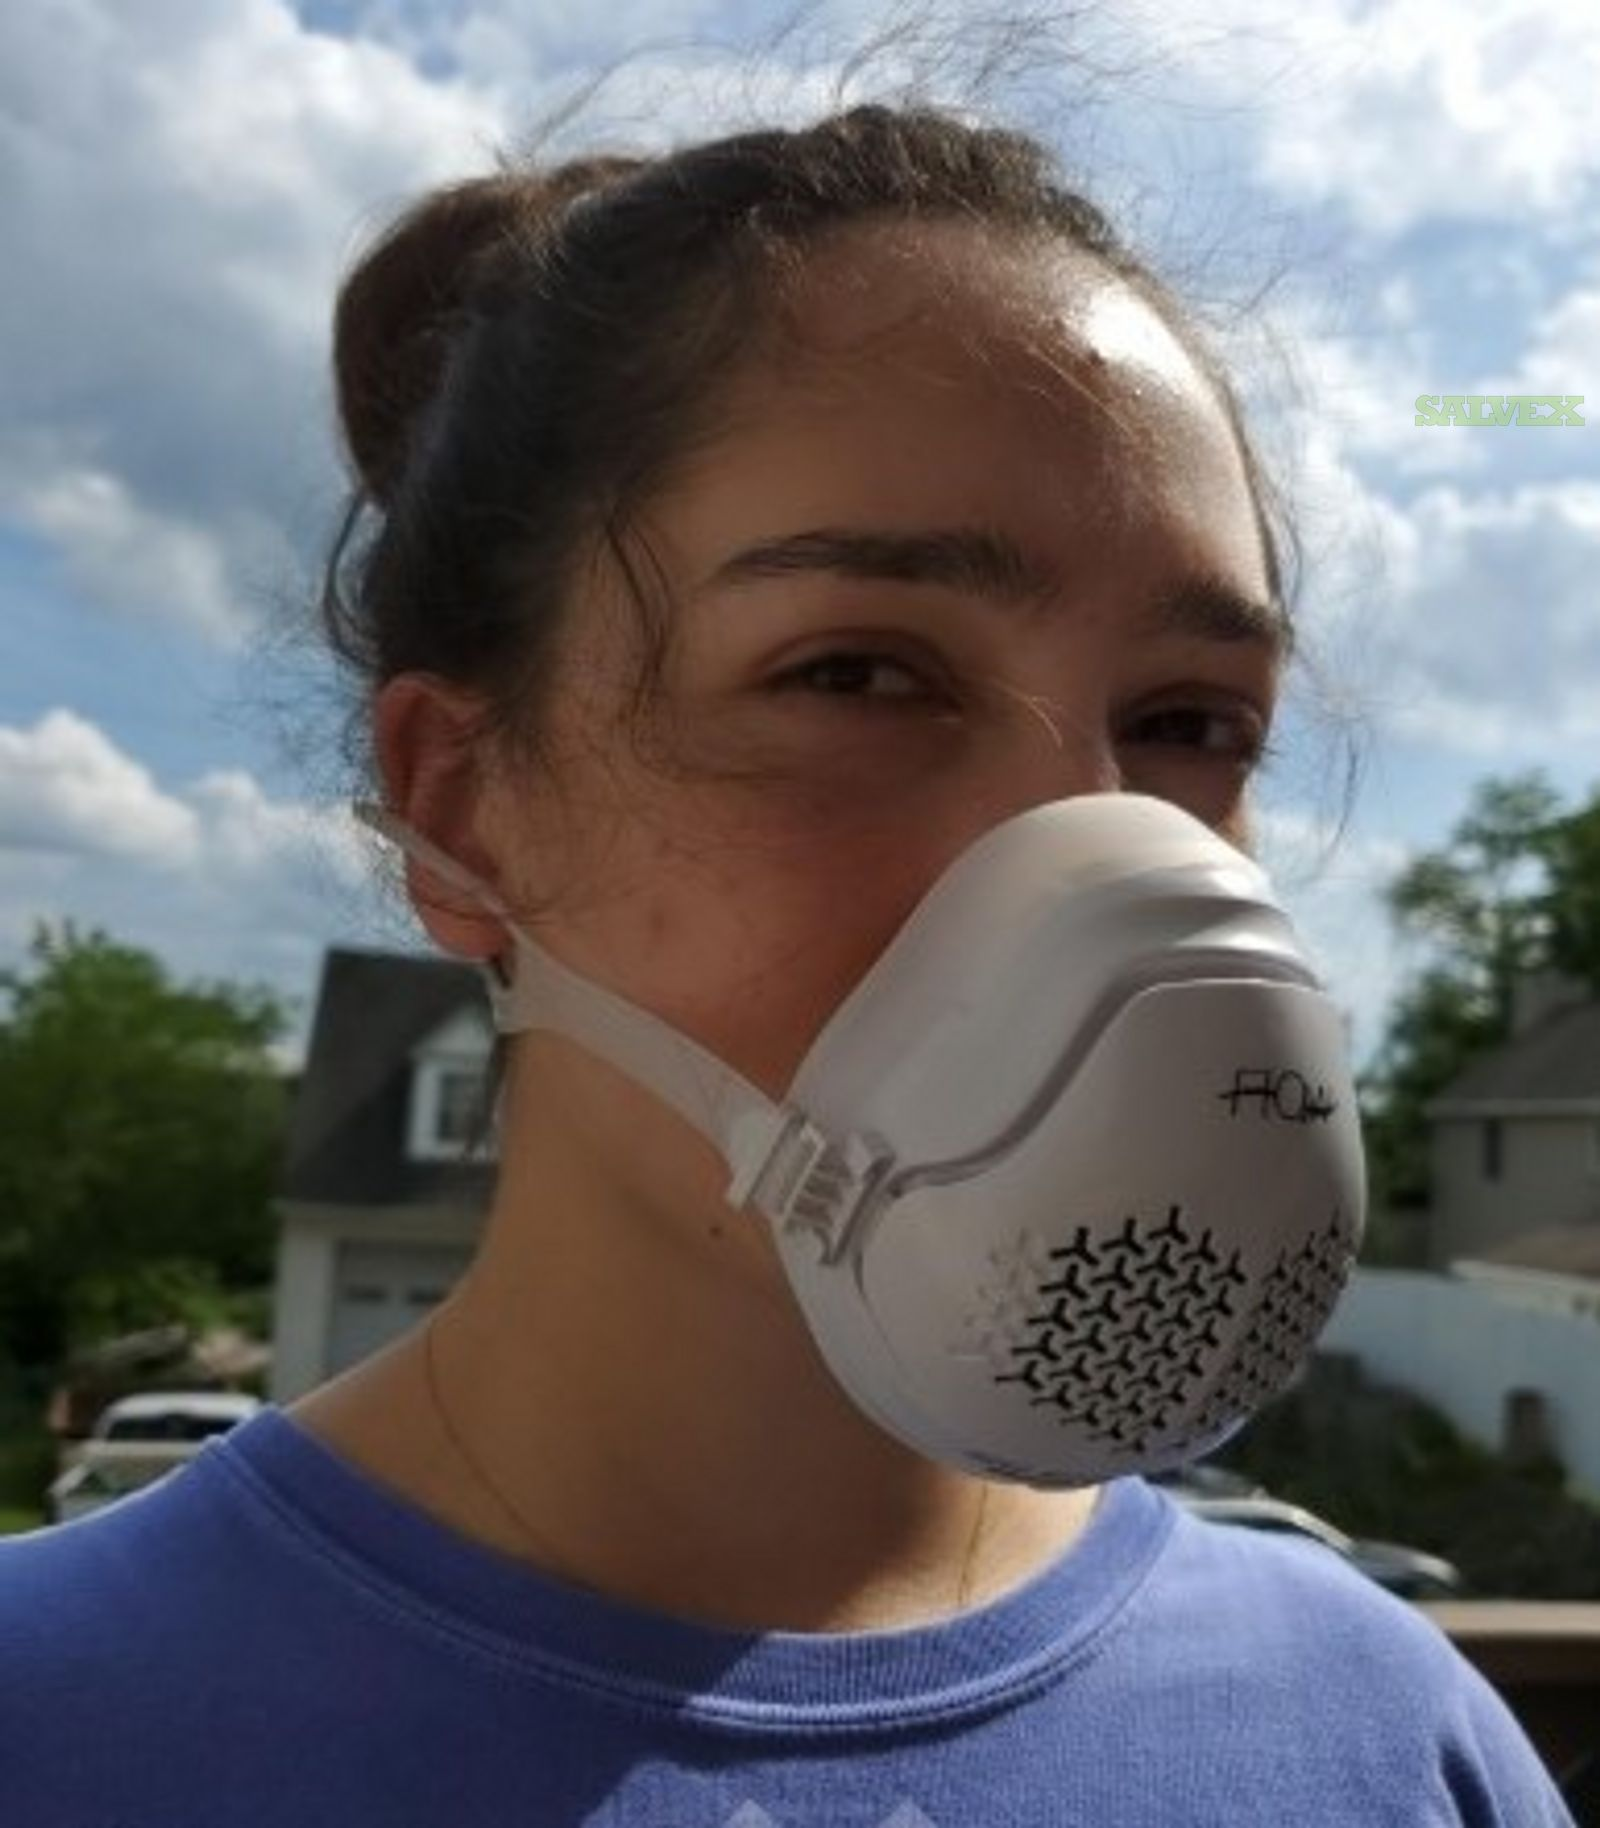 O2 Flow Personal Air Purifier Mask With Hepa And Carbon Filter(900 Units)